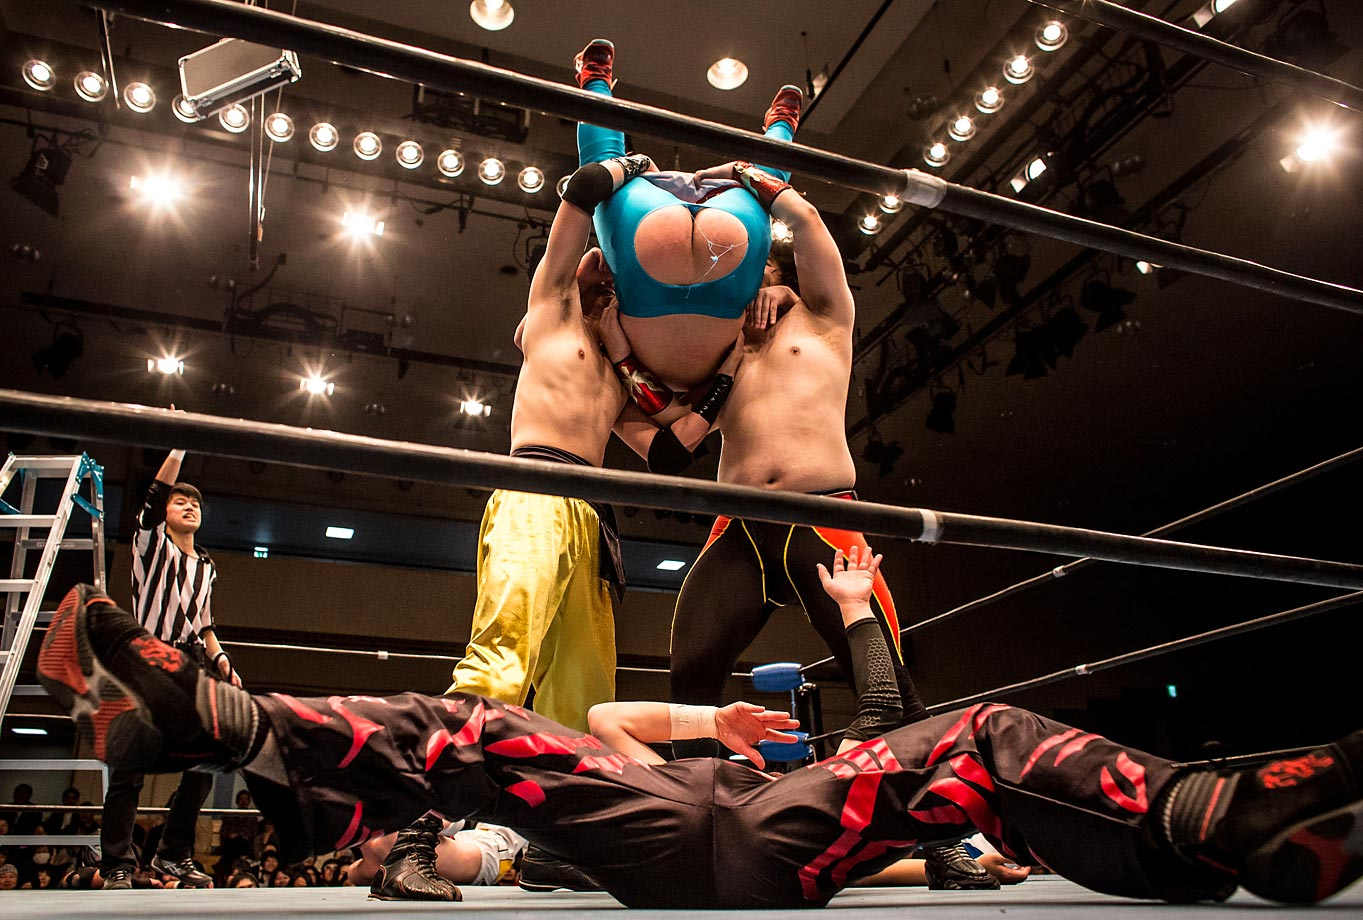 Student wrestlers during the Student Pro-Wrestling Summit in Tokyo, Japan. Members of college pro-wrestling clubs from all across Japan gathered to compete in their final graduation fight night.